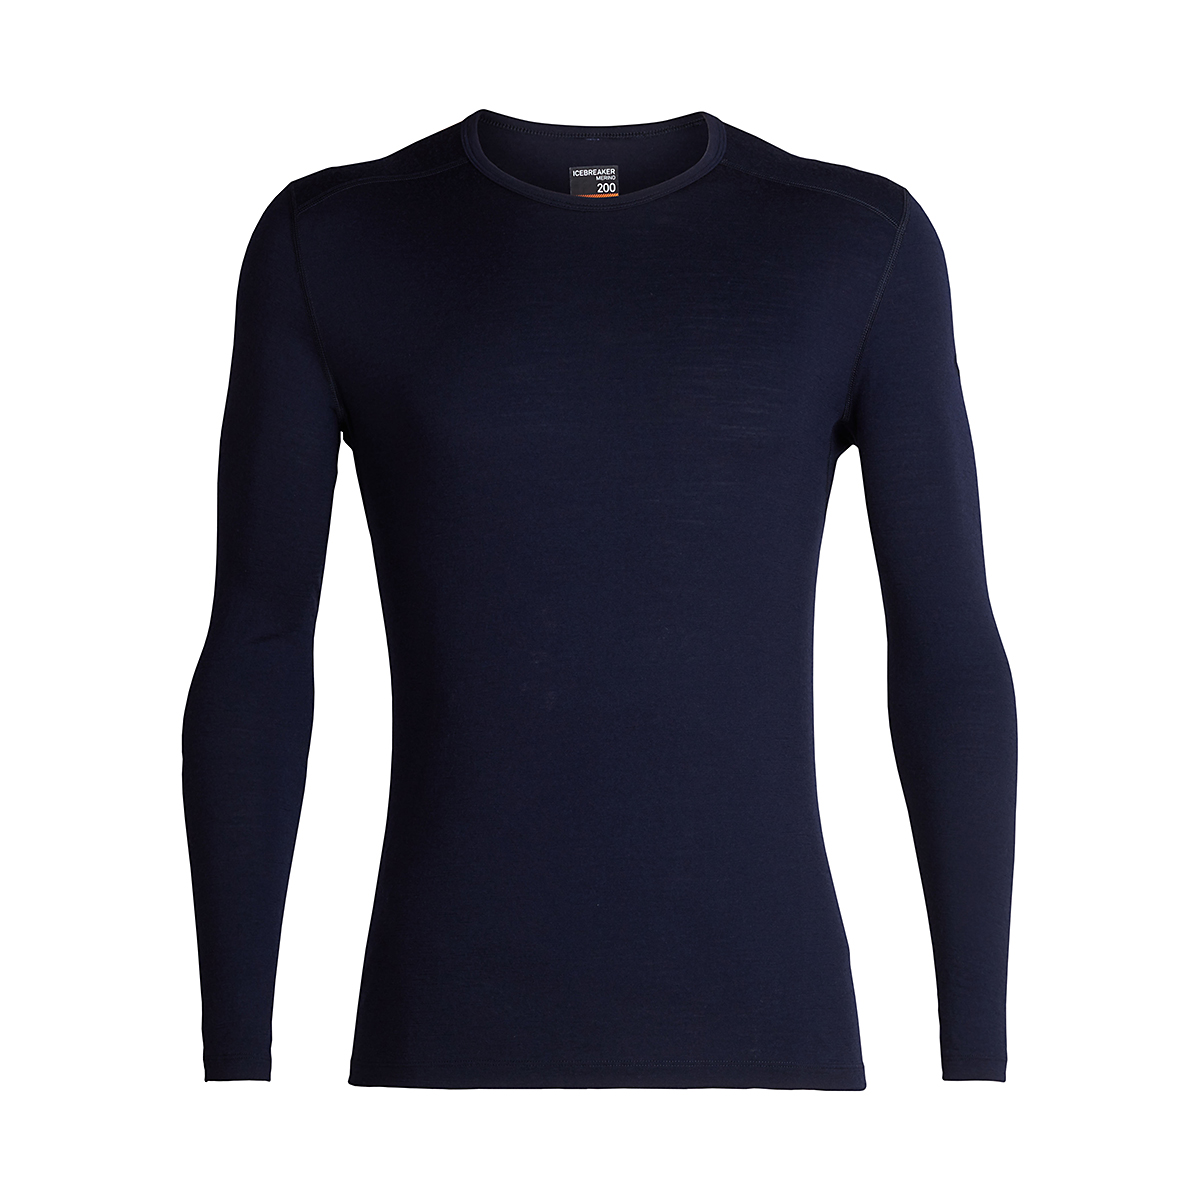 Men's Icebreaker 200 Oasis Long Sleeve Crewe - Color: Midnight Navy - Size: S, Midnight Navy, large, image 1